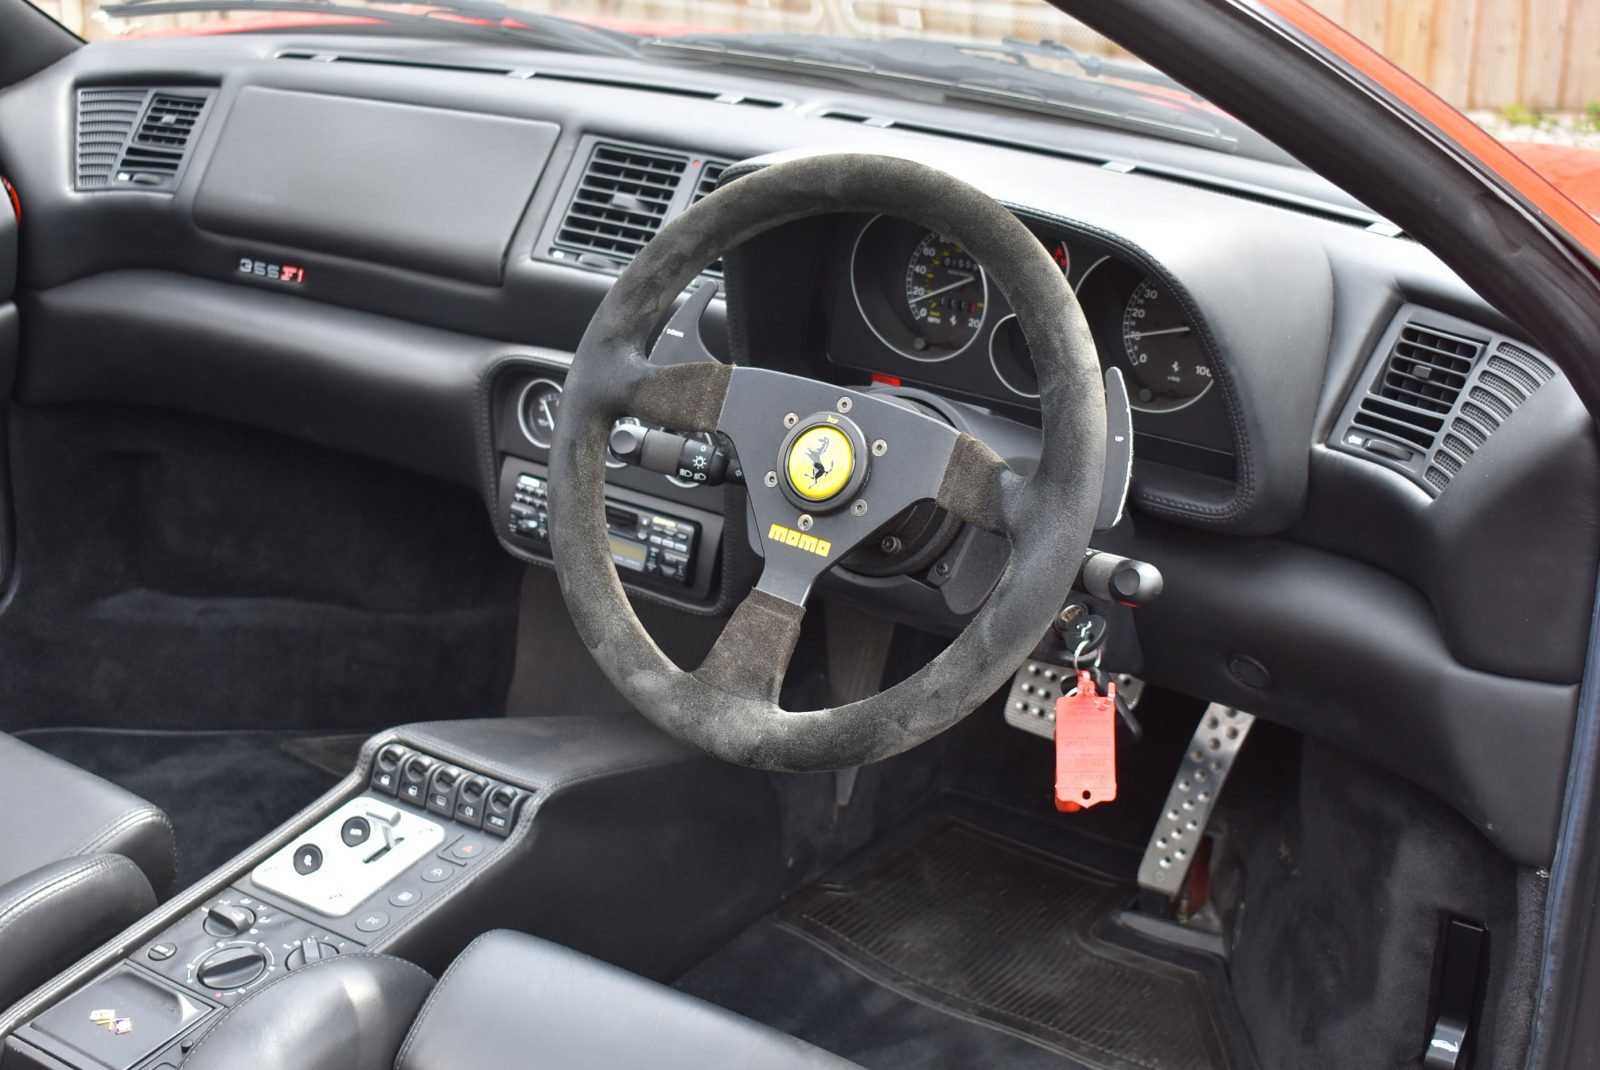 1999 (T) Ferrari F355 3.5 GTS 2dr For Sale (picture 3 of 6)